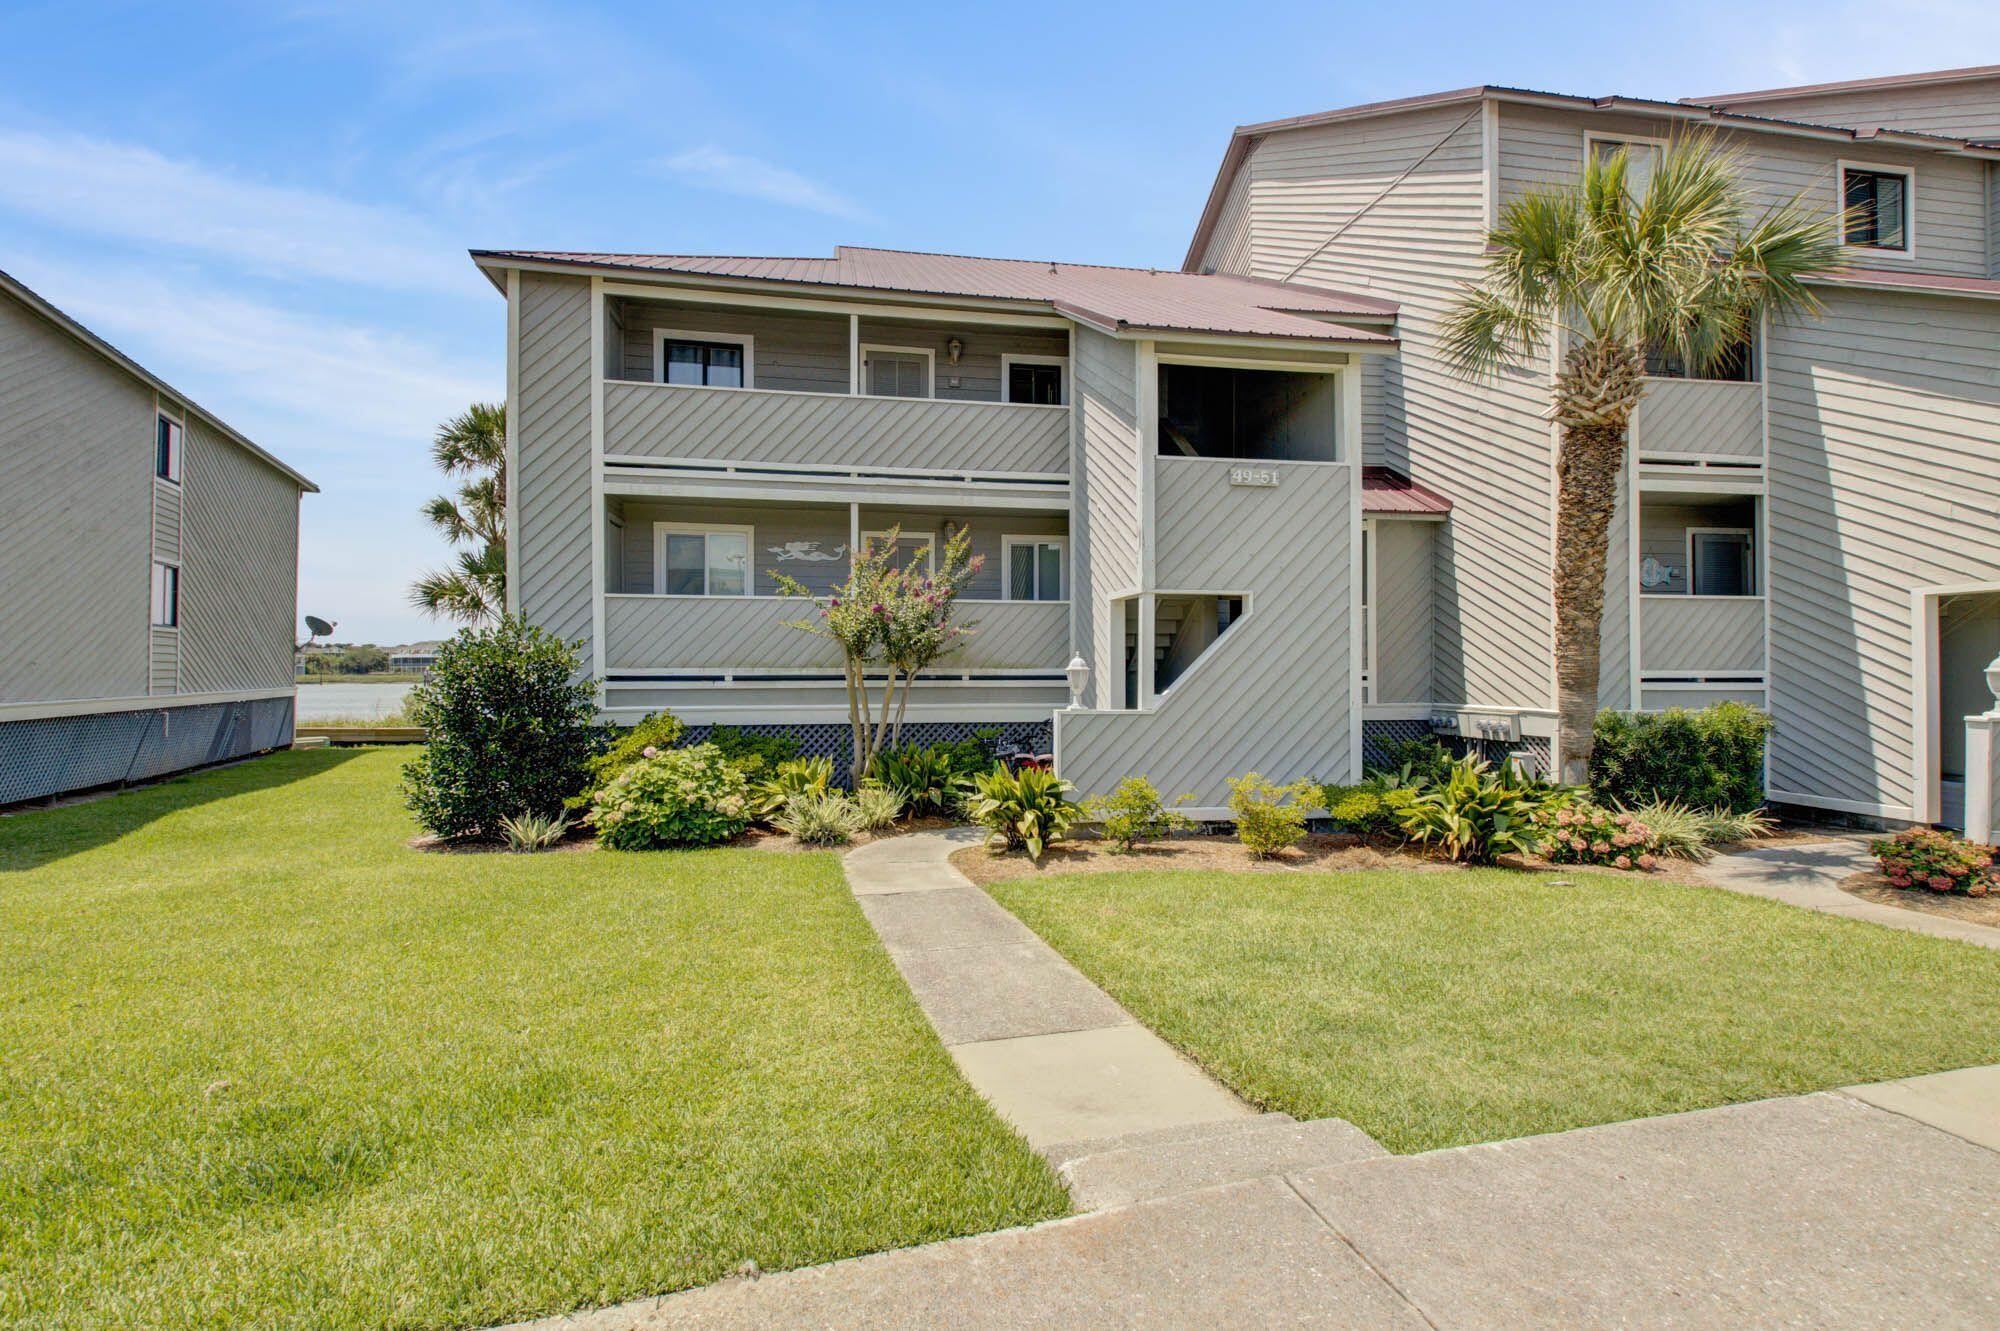 Mariners Cay Homes For Sale - 51 Mariners Cay, Folly Beach, SC - 3